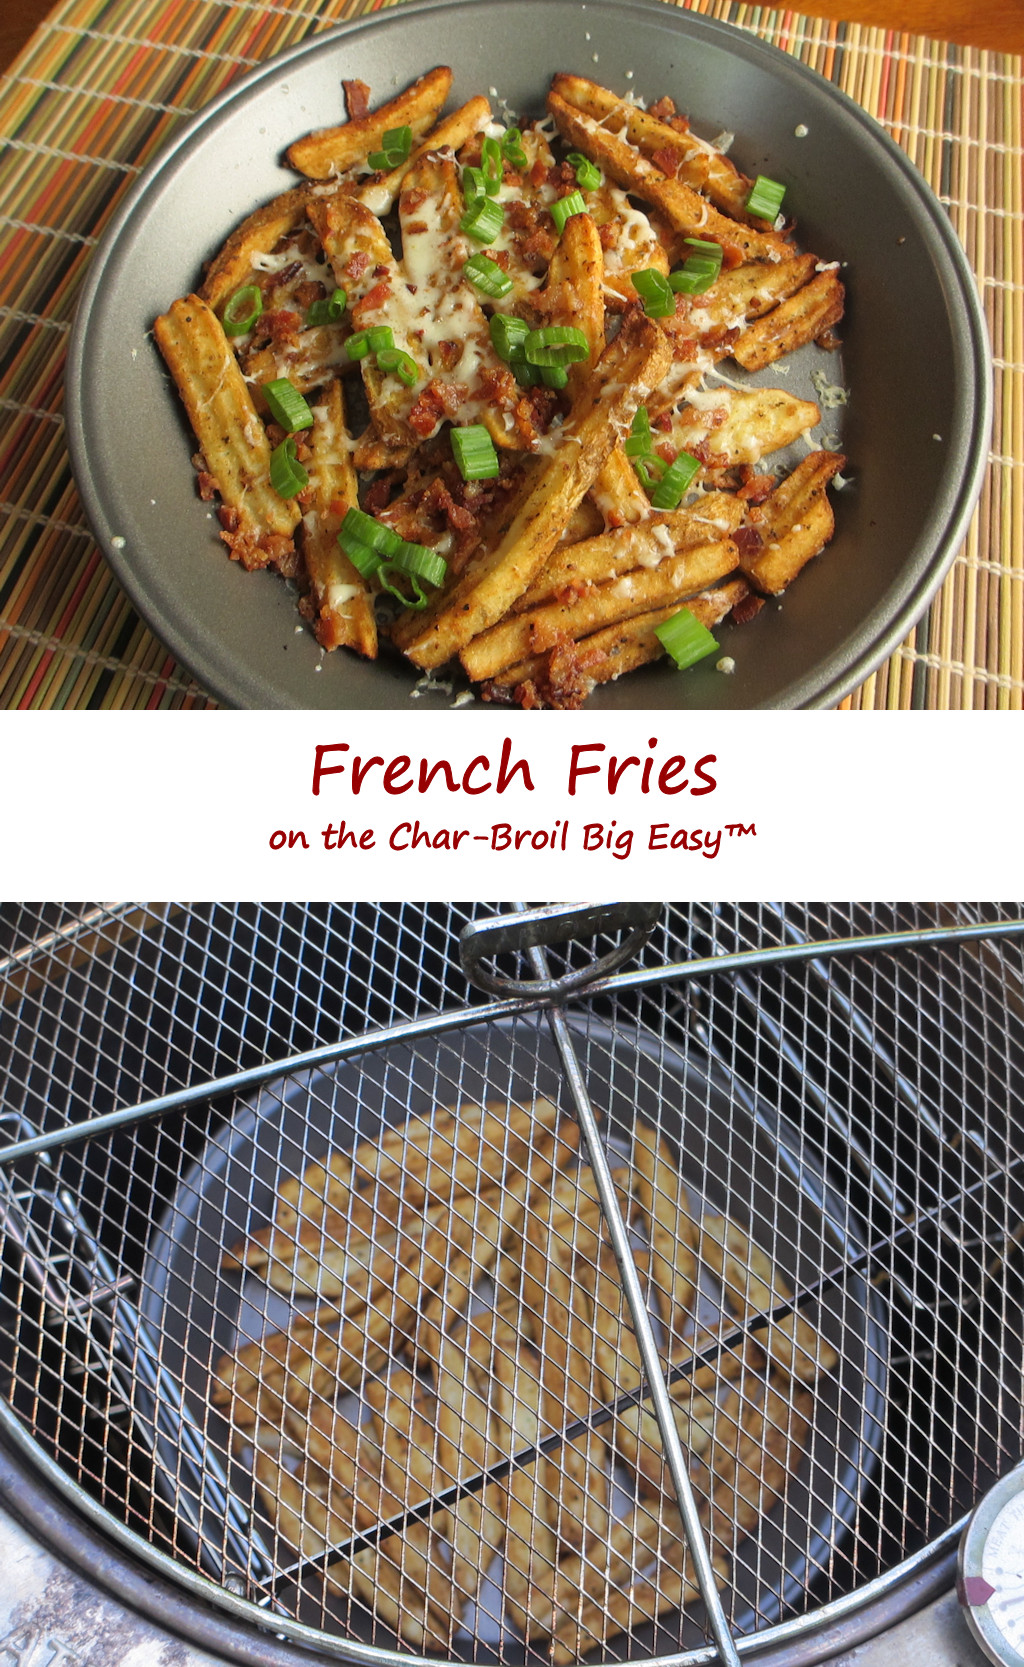 French Fries on the Char-Broil Big Easy